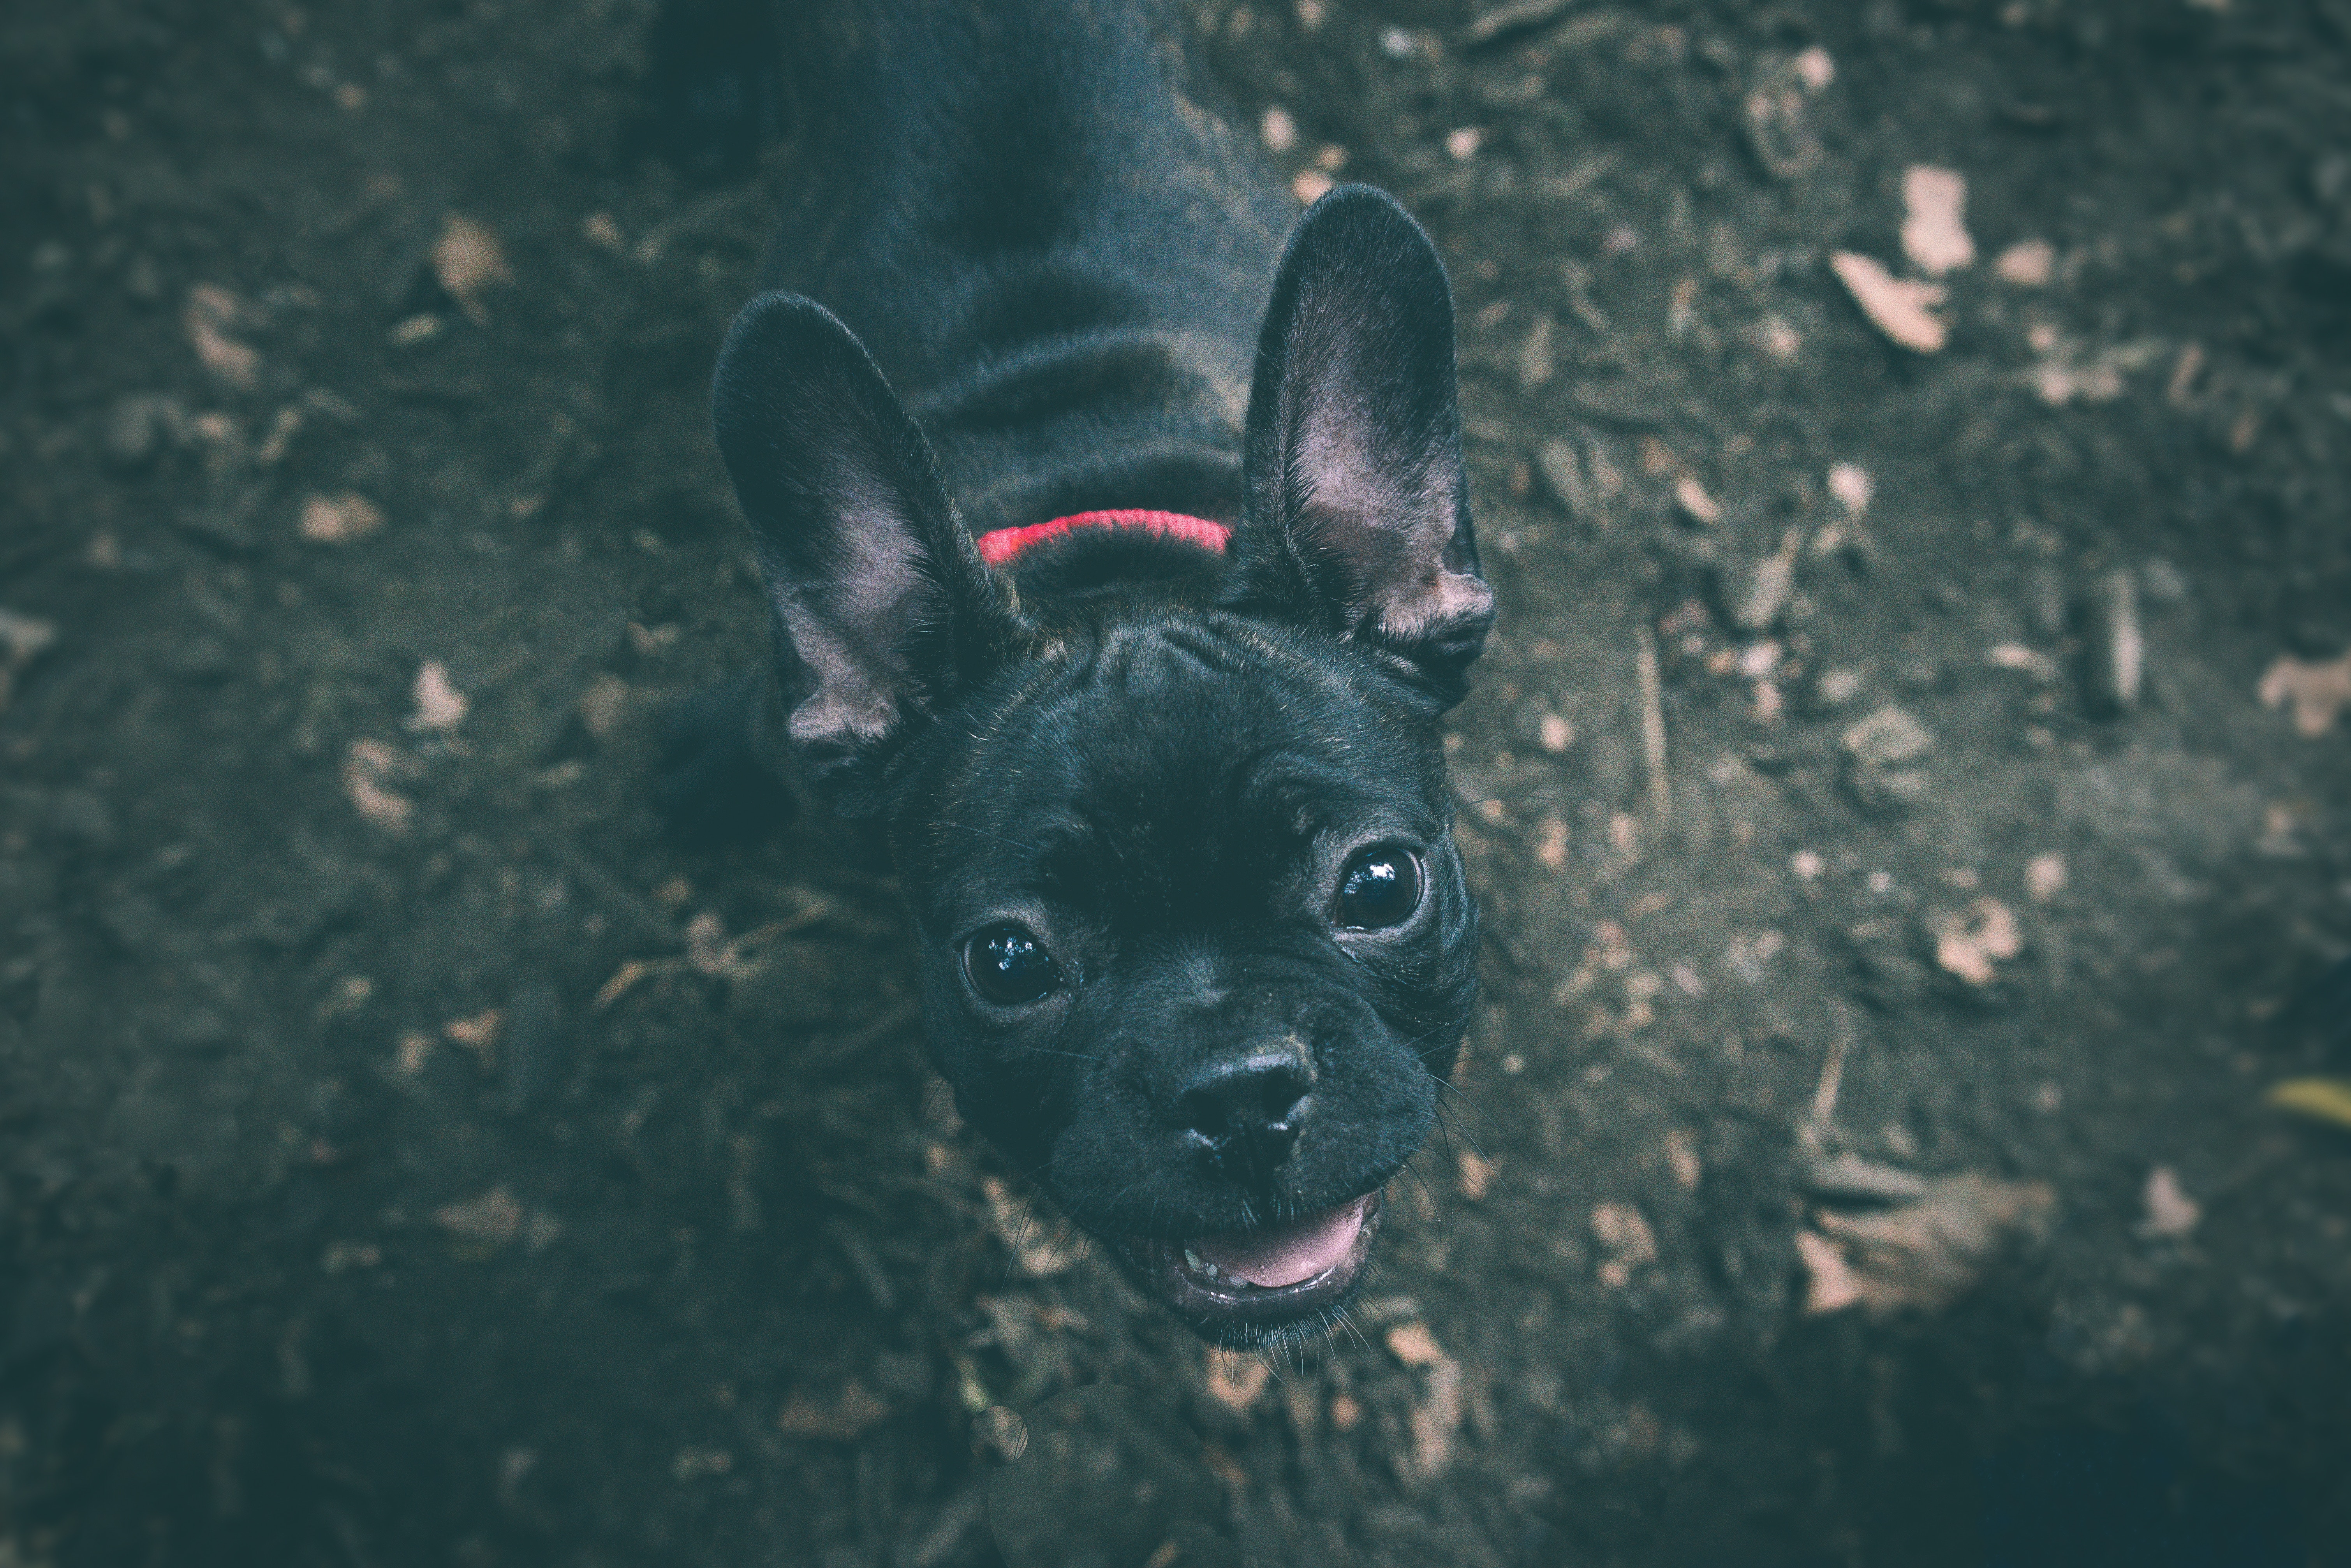 148973 download wallpaper Animals, Dog, Bulldog, Muzzle screensavers and pictures for free